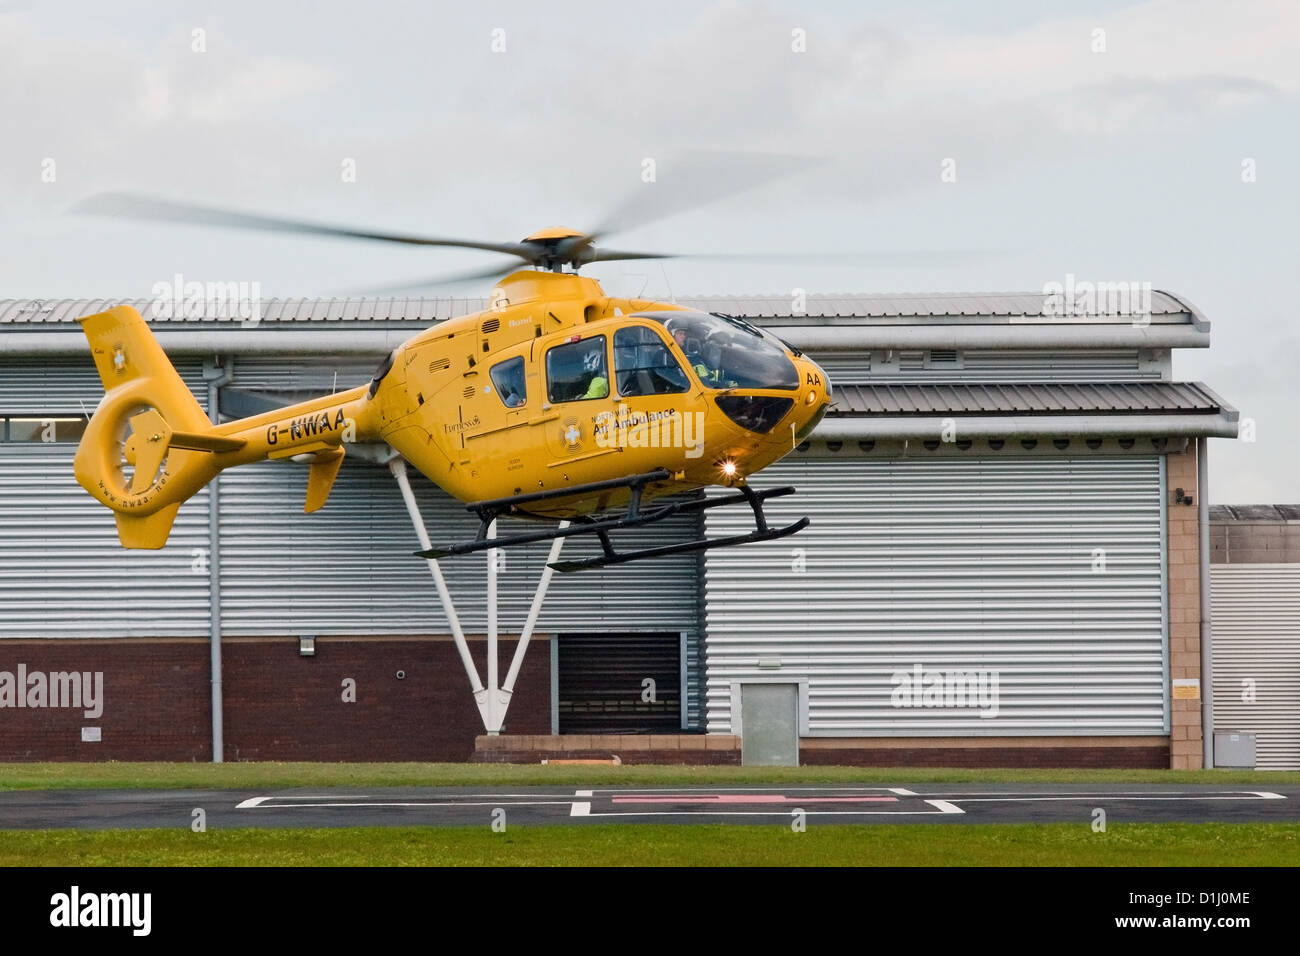 North West Air Ambulance helicopter lifts off from the heli-pad at Royal Preston Hospital, Lancashire - Stock Image